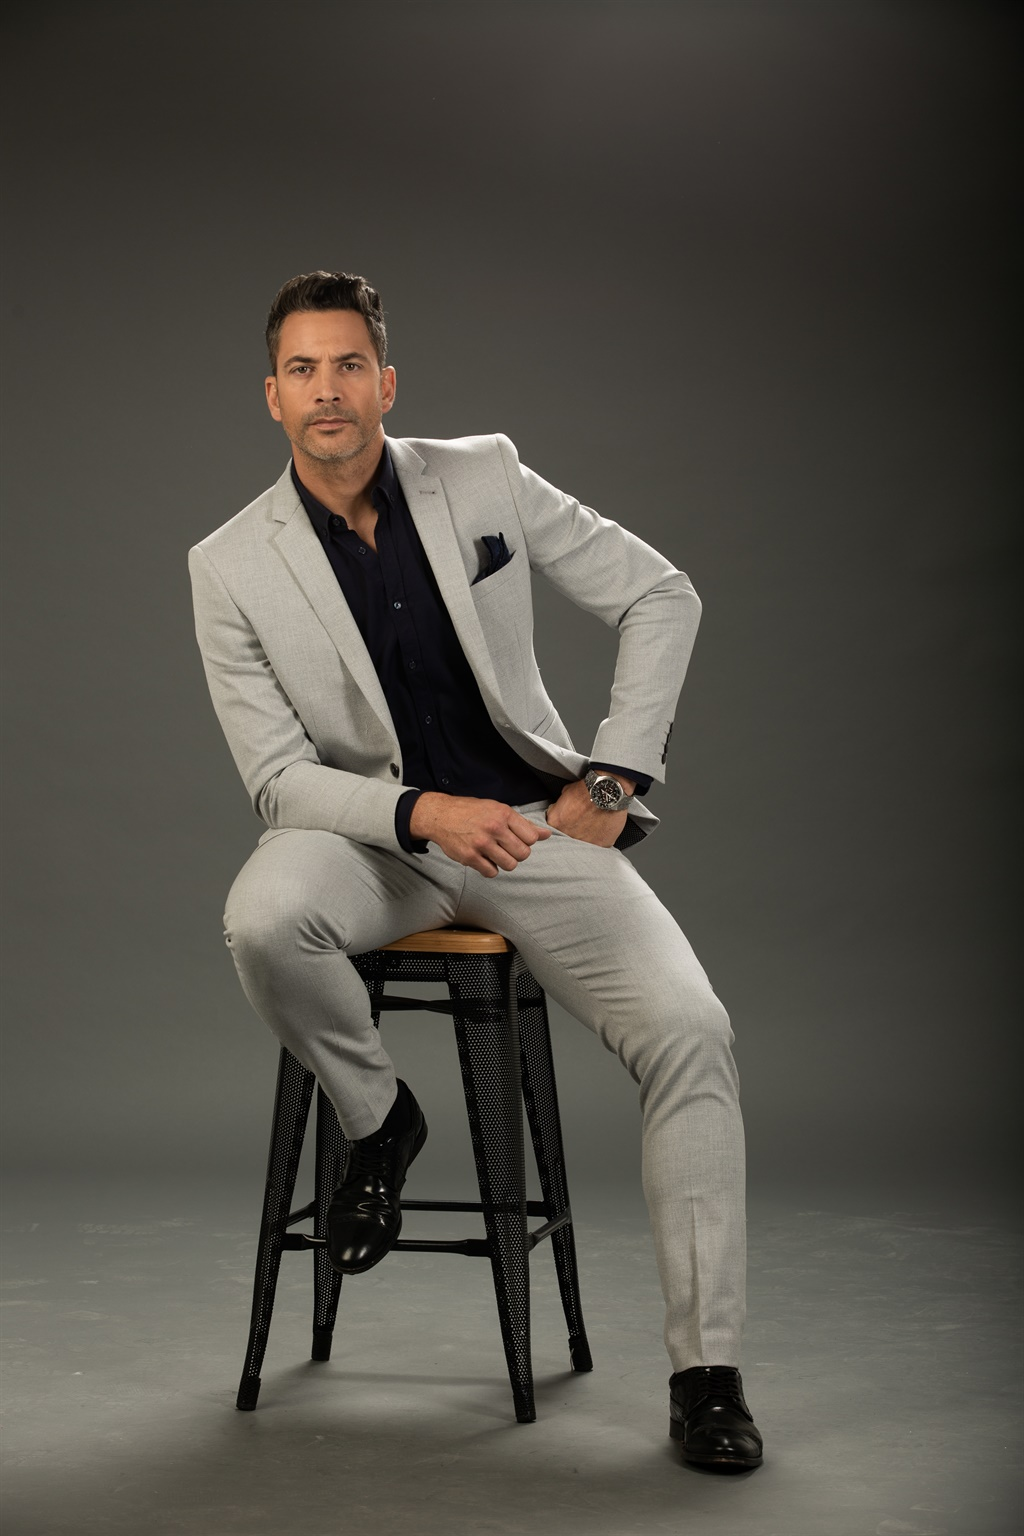 Nico Panagio as Bastian Weyers.